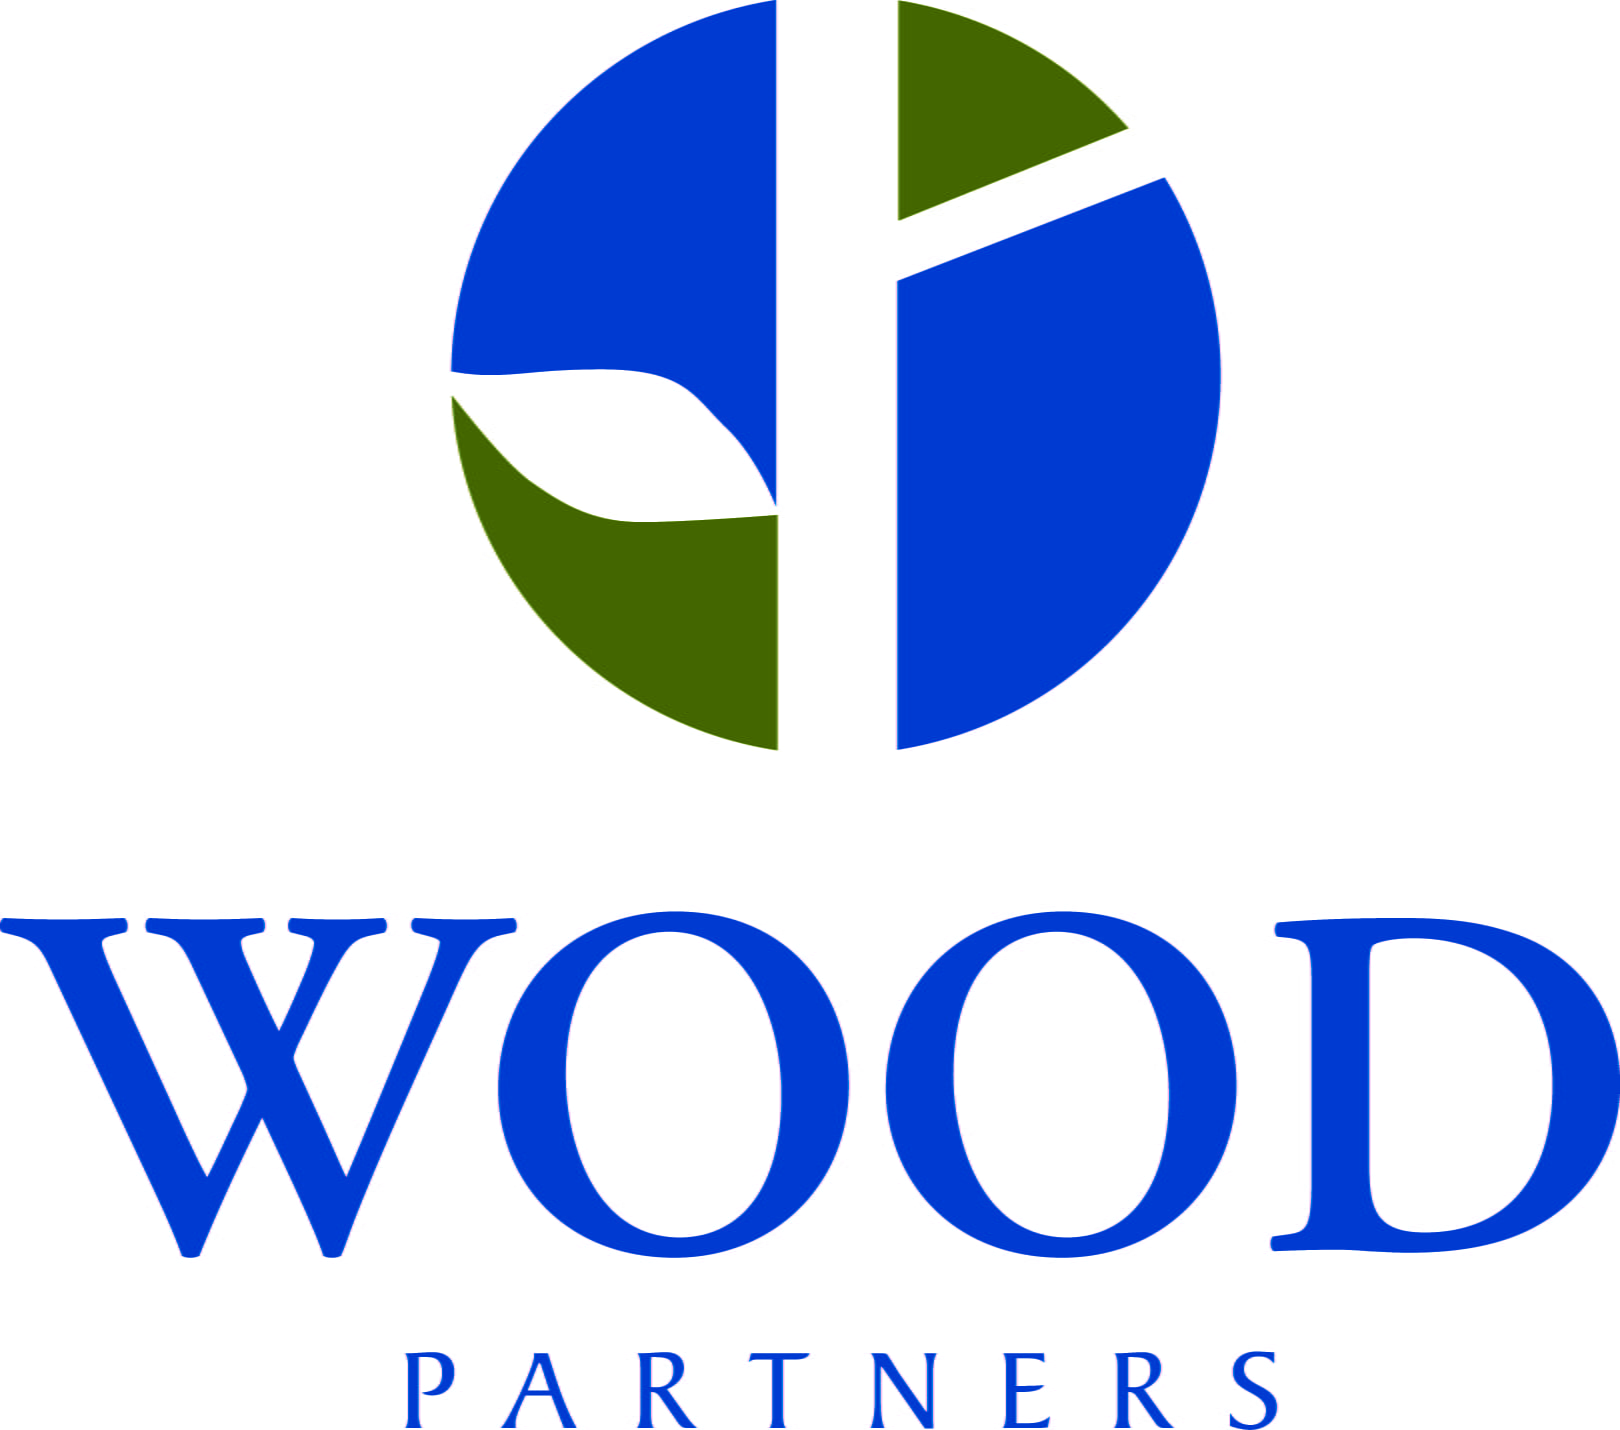 Wood Partners Announces the Opening of Its 20th U.S. Office in Salt Lake City